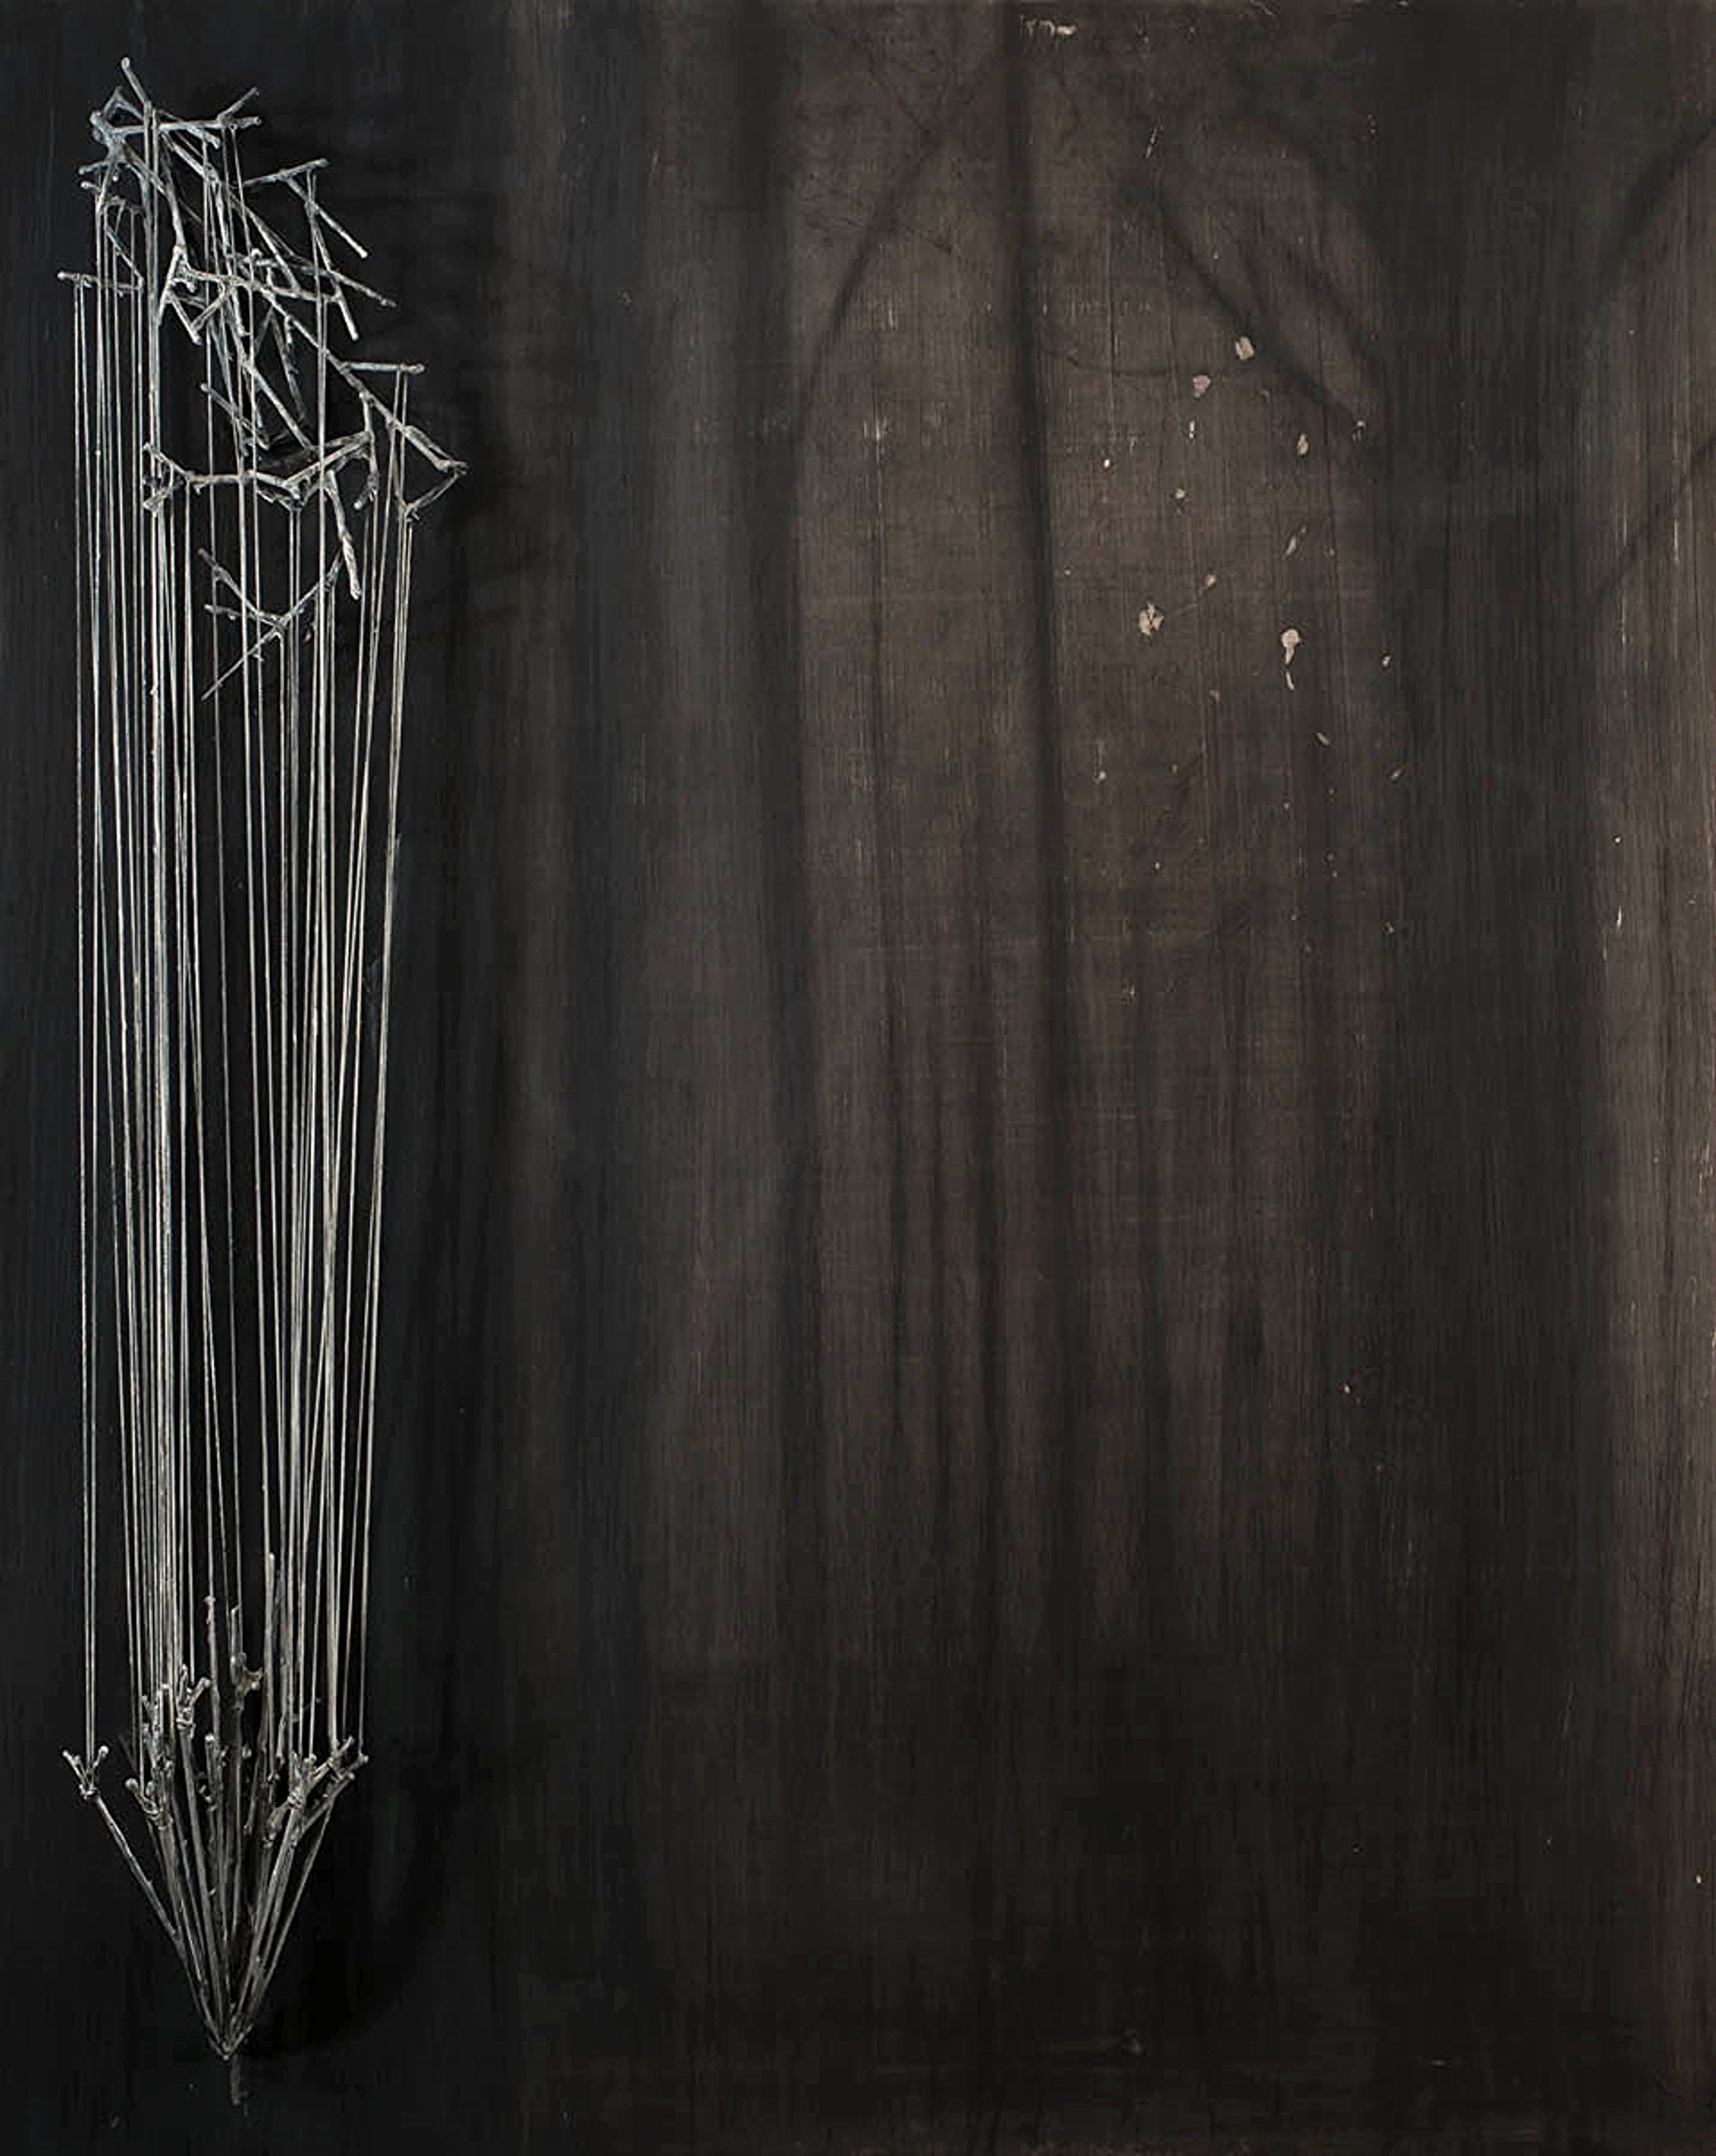 FOREST WITH STRING by JUSTIN GAFFREY